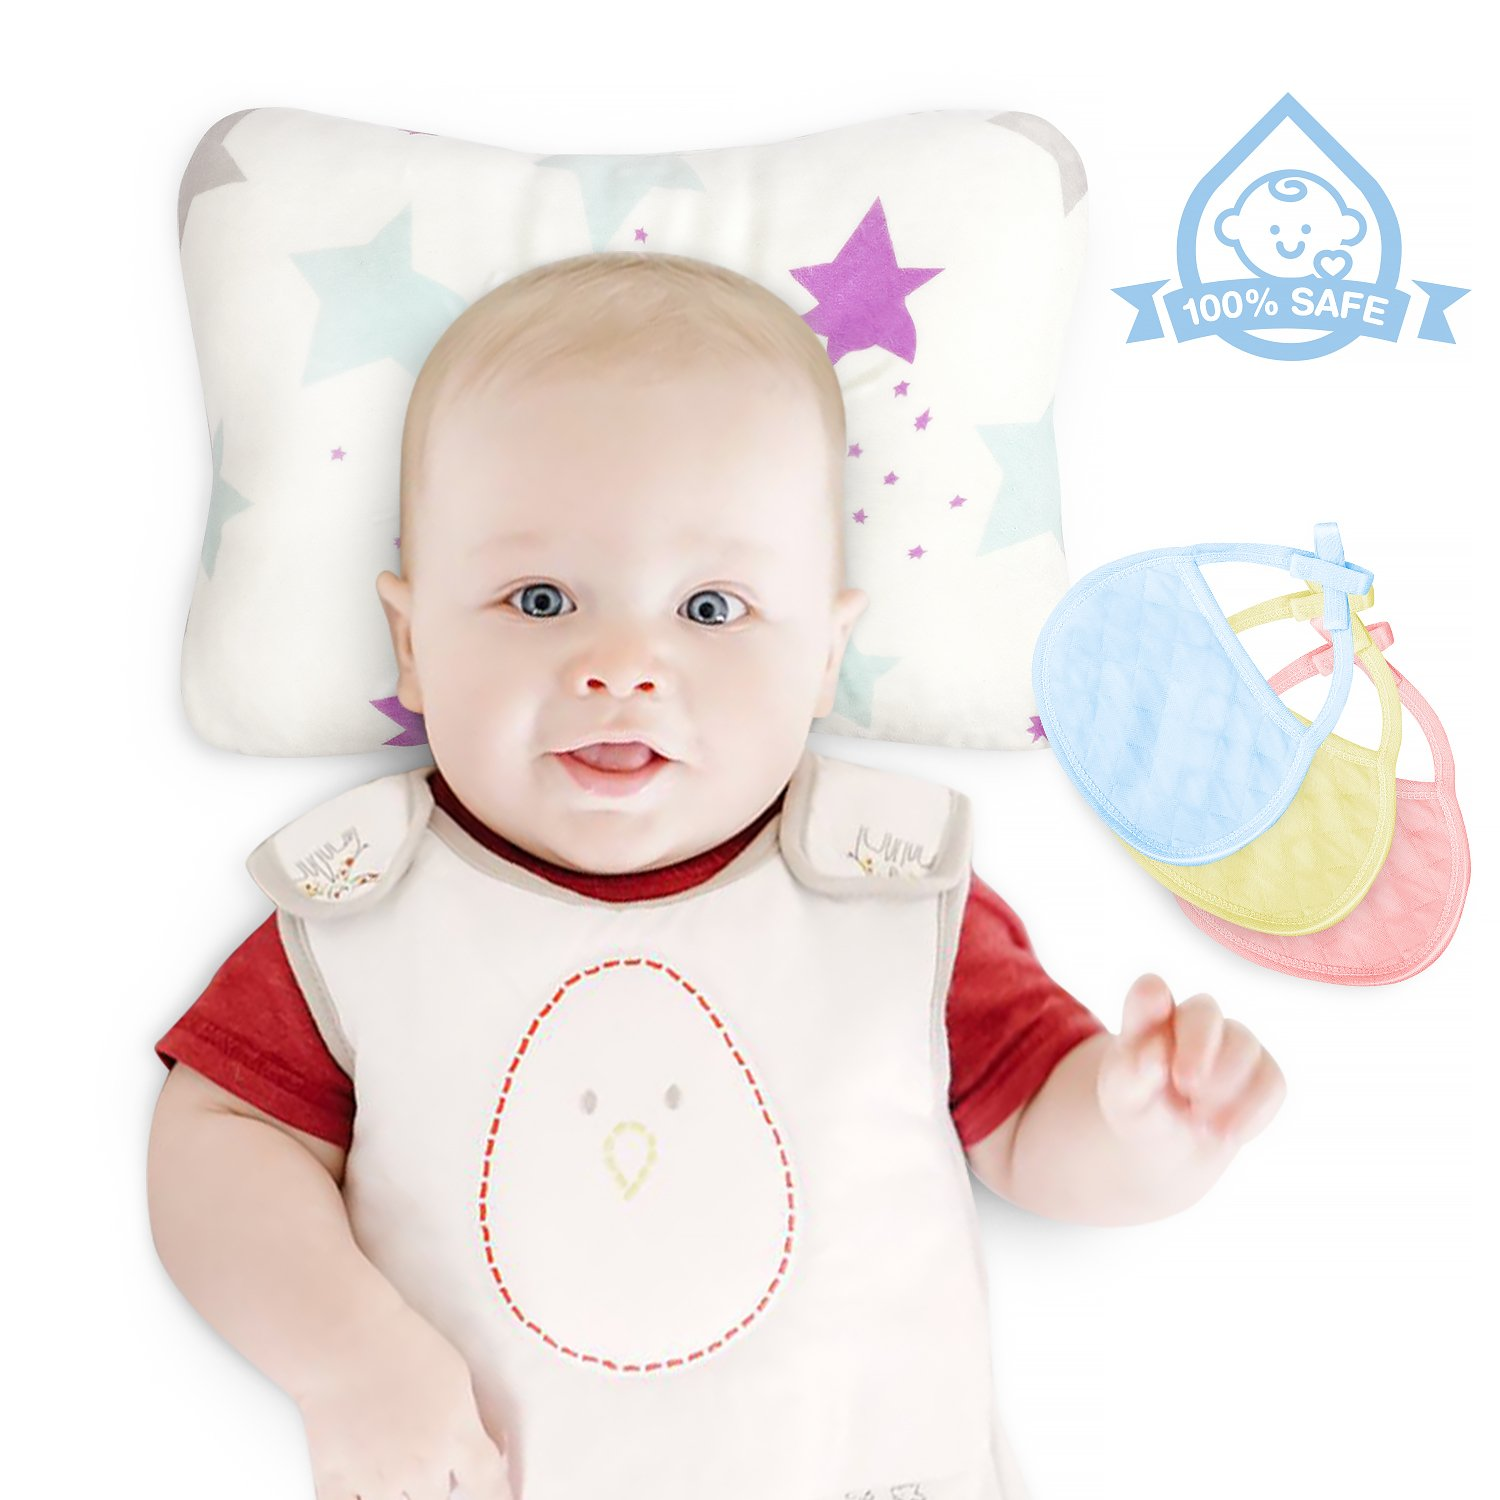 Organic Cotton Baby Head Shape Pillow Prevents Rolling Over/Plagiocephaly/Flat Head Syndrome Infant Pillow For Newborns